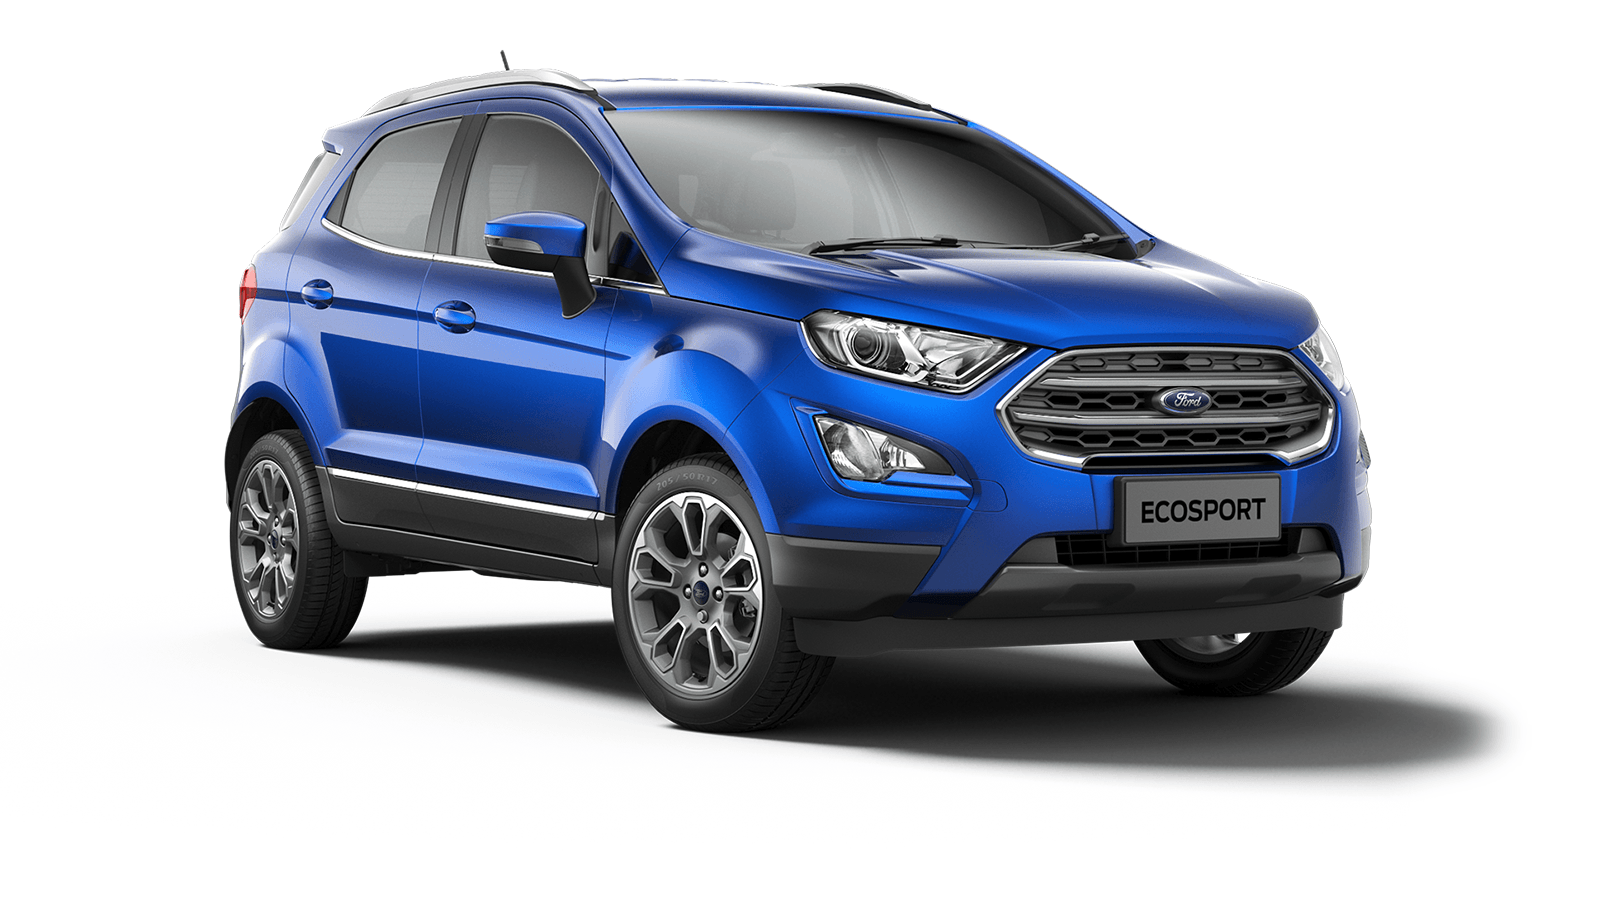 ECOSPORT Titanium 5 Door in Lightning Blue